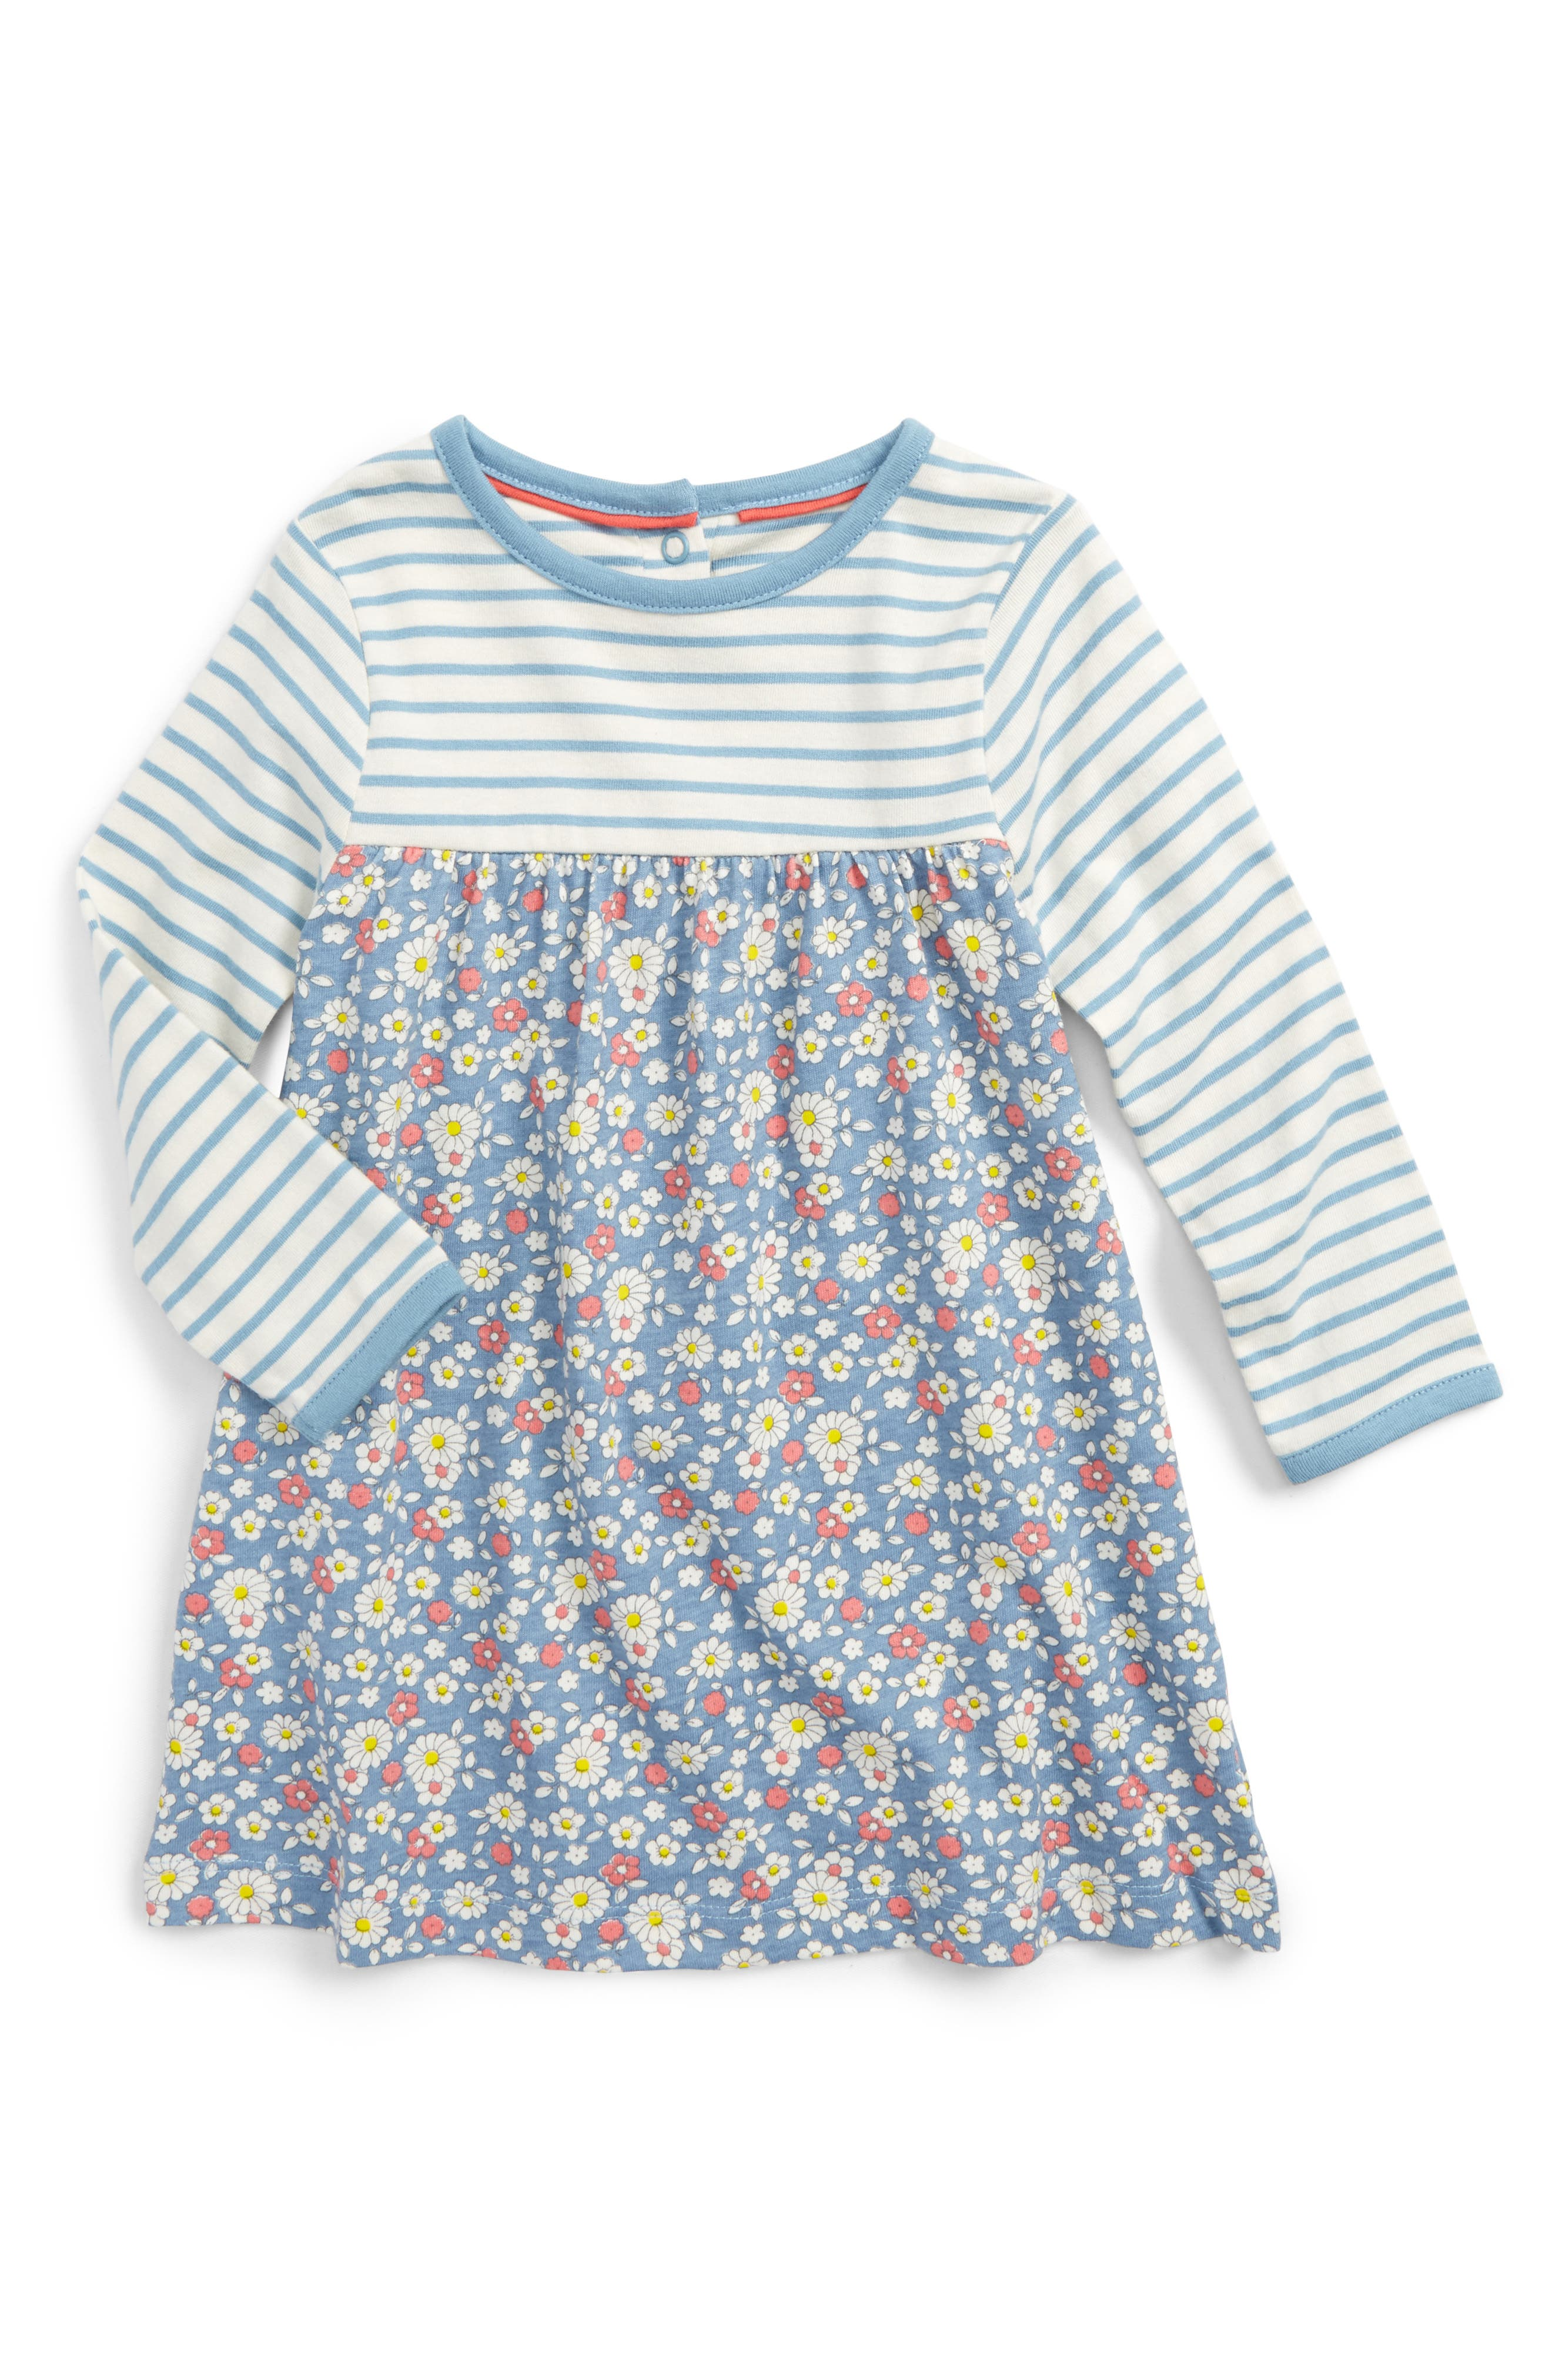 Alternate Image 1 Selected - Mini Boden Hotchpotch Dress (Baby Girls & Toddler Girls)